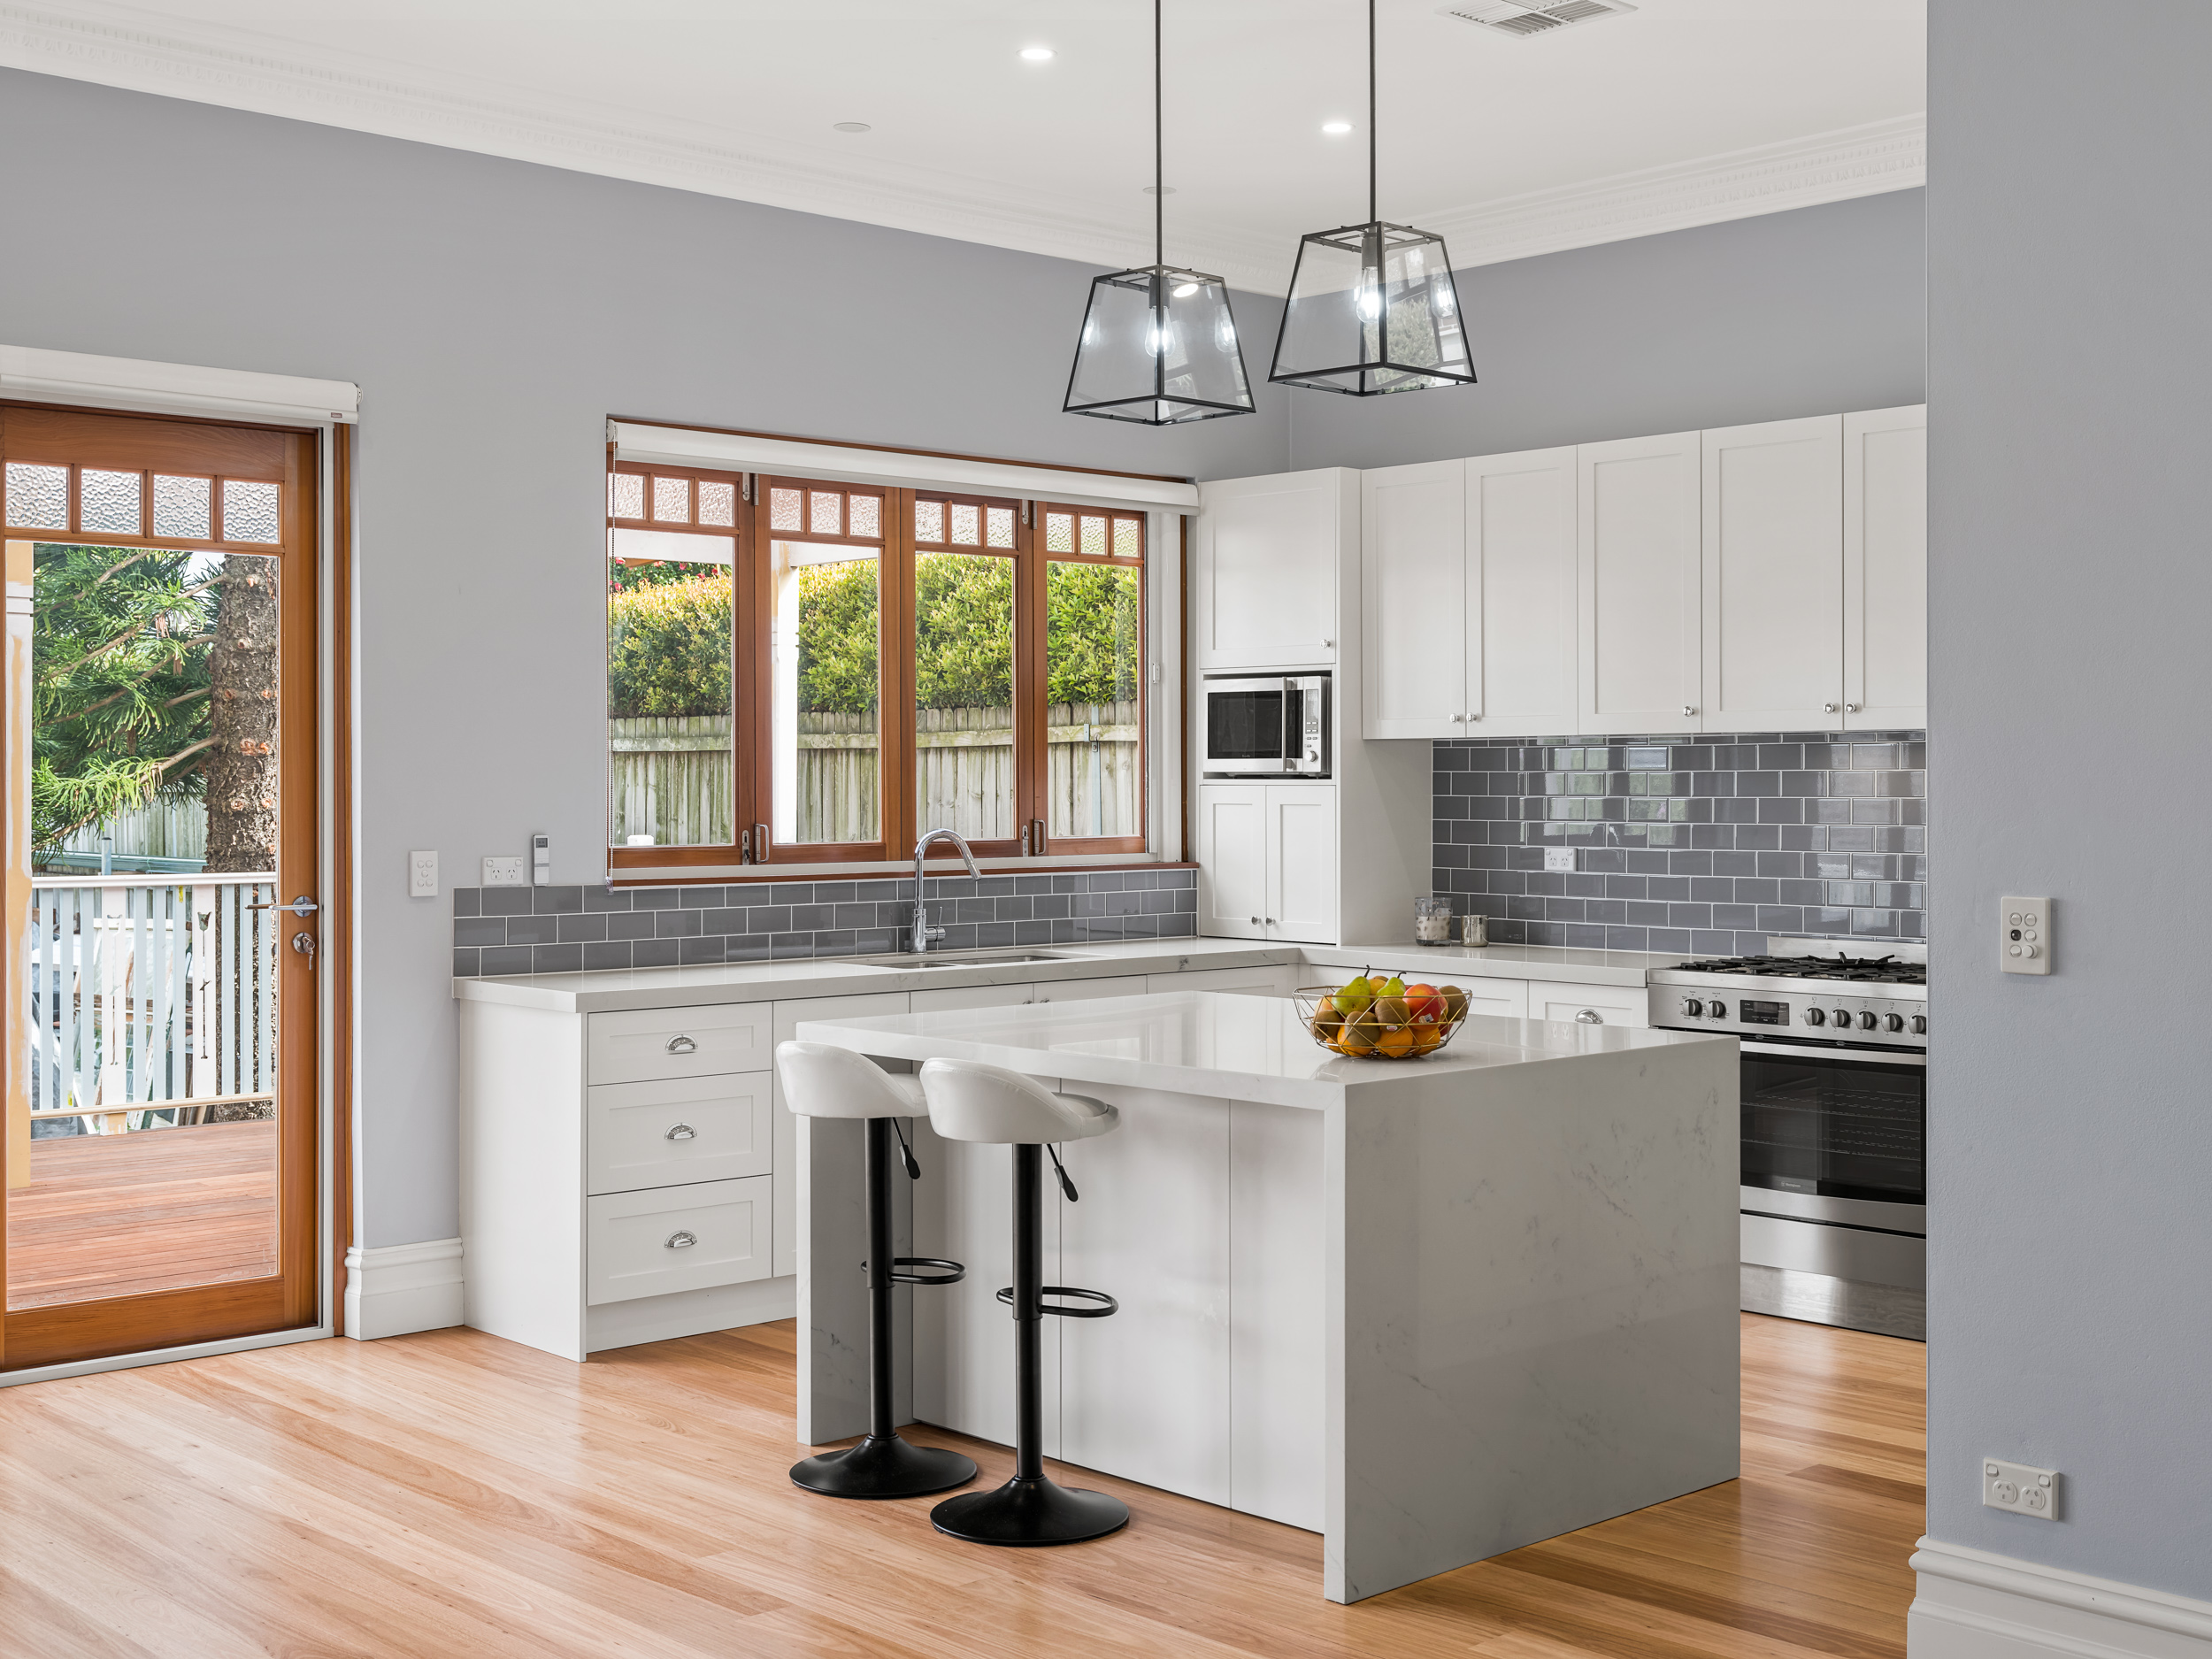 Ashfield kitchen